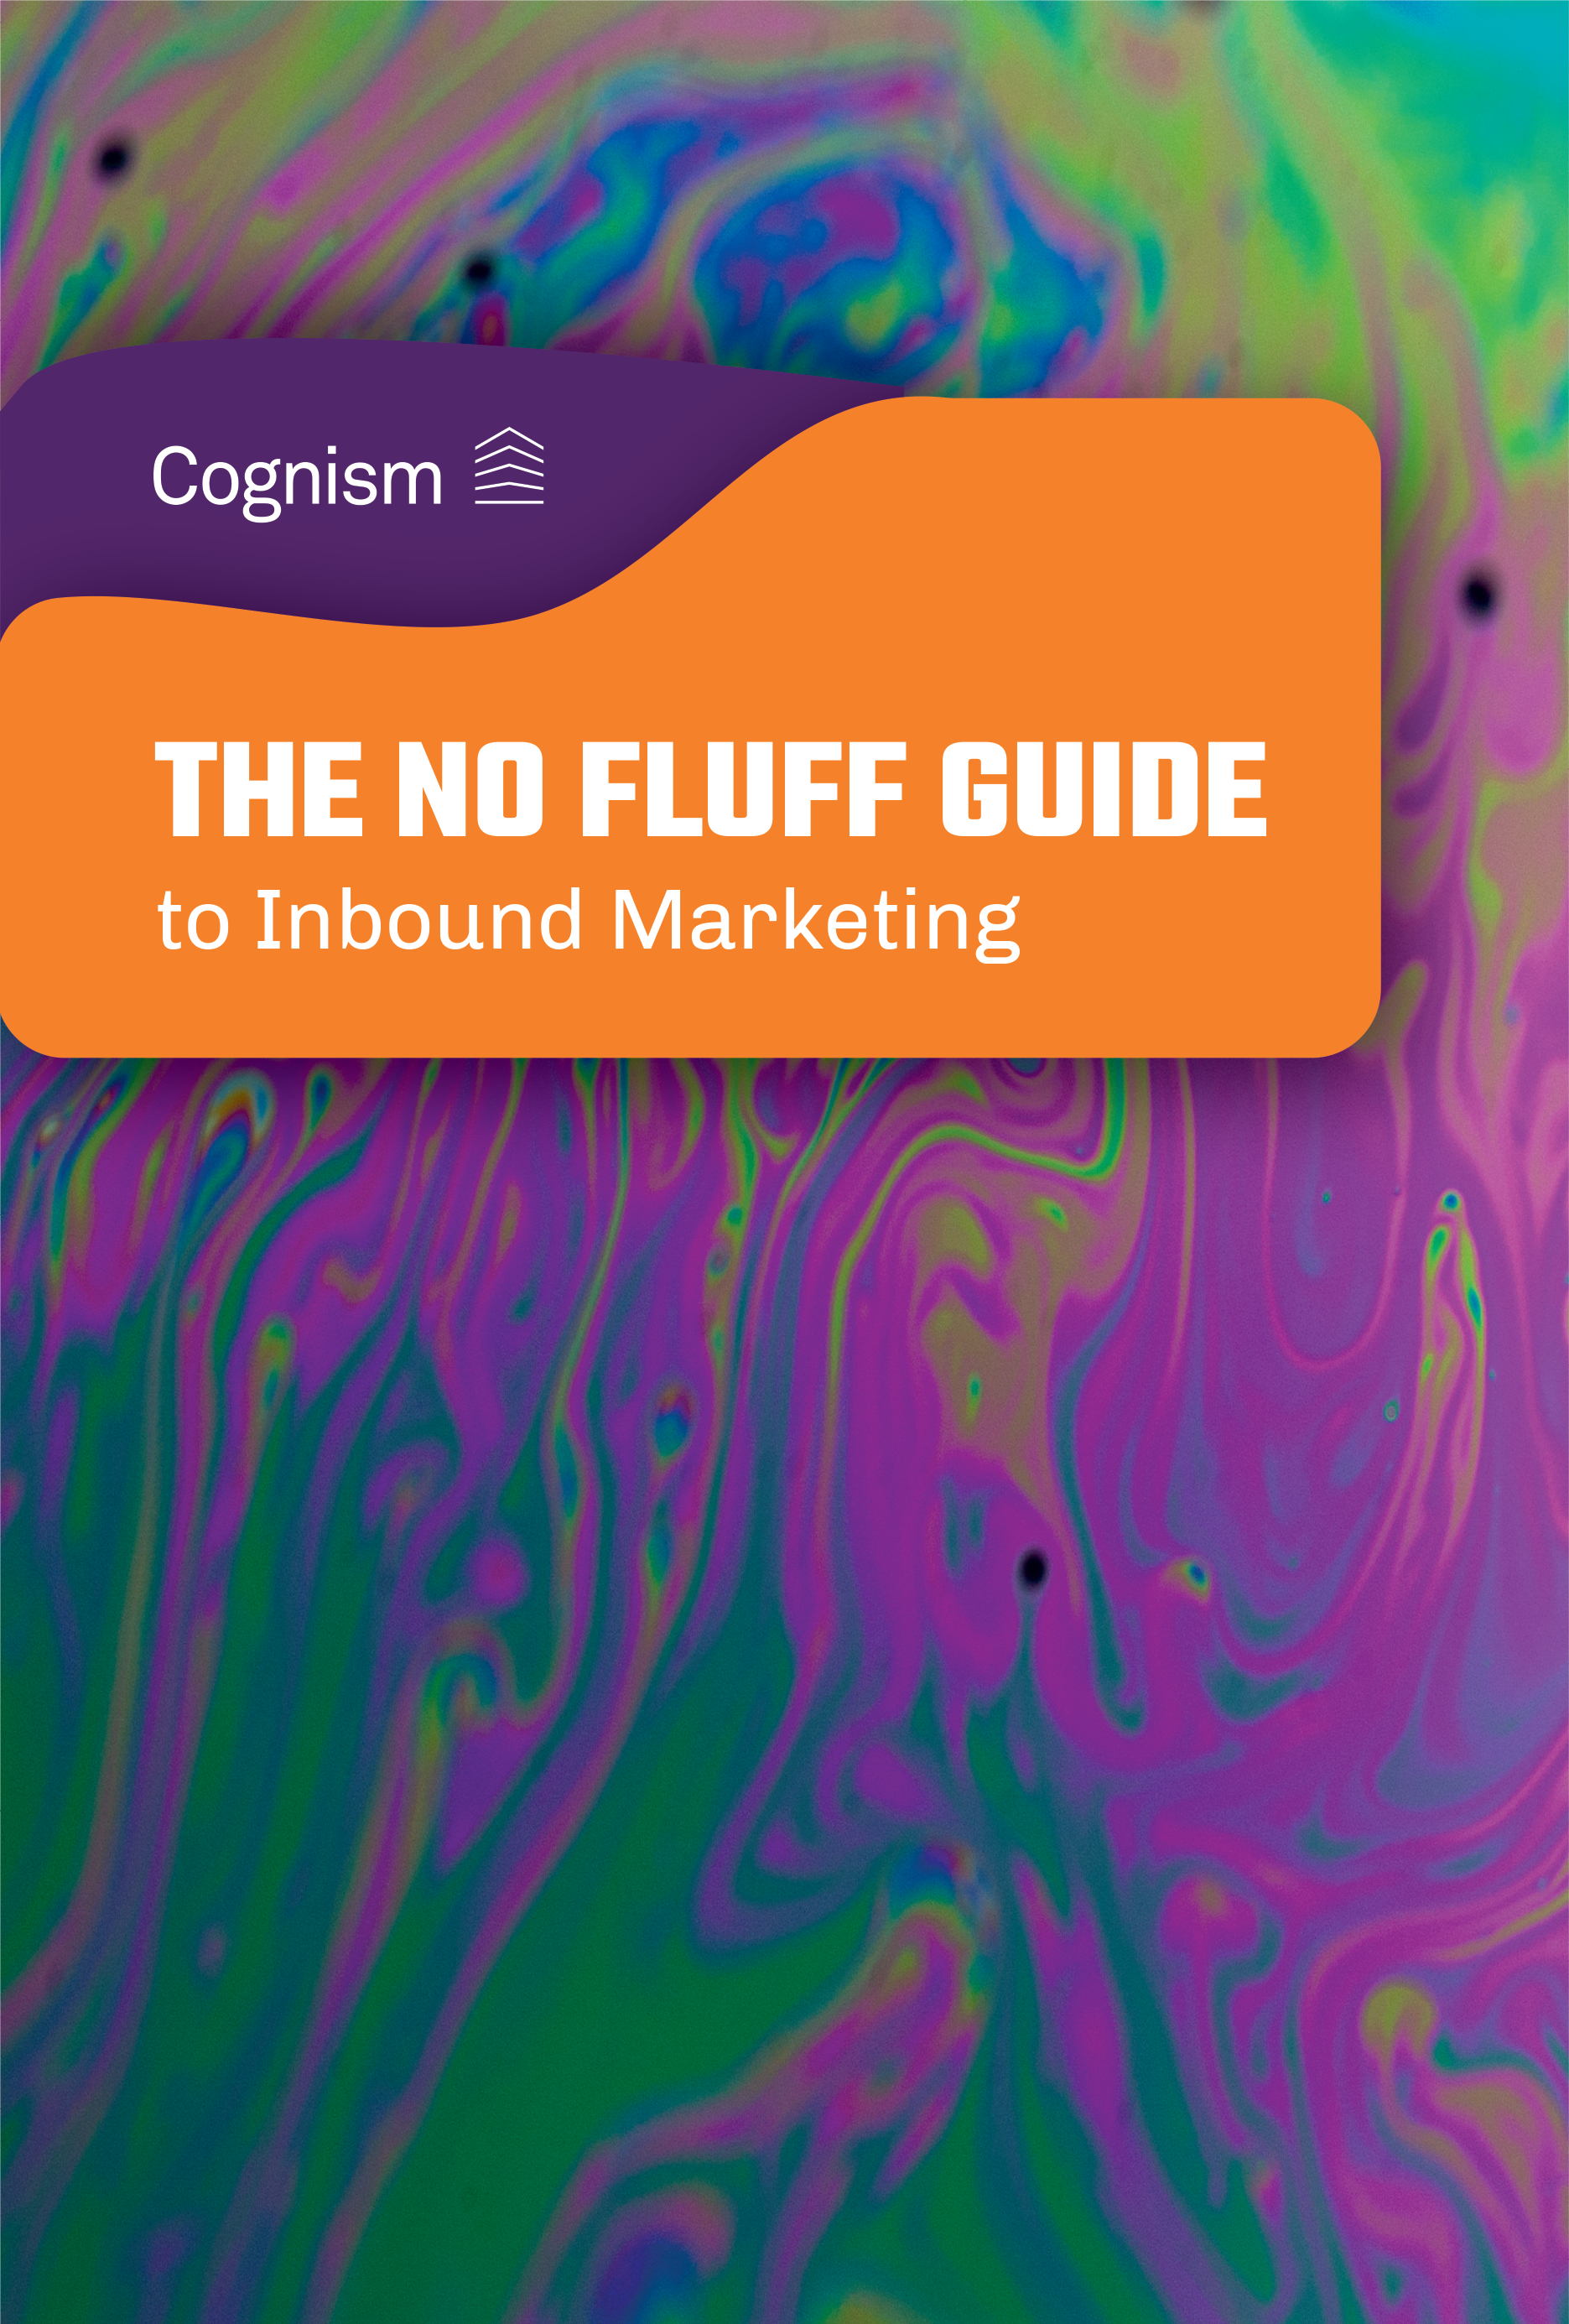 The No Fluff Guide to Inbound Marketing-1